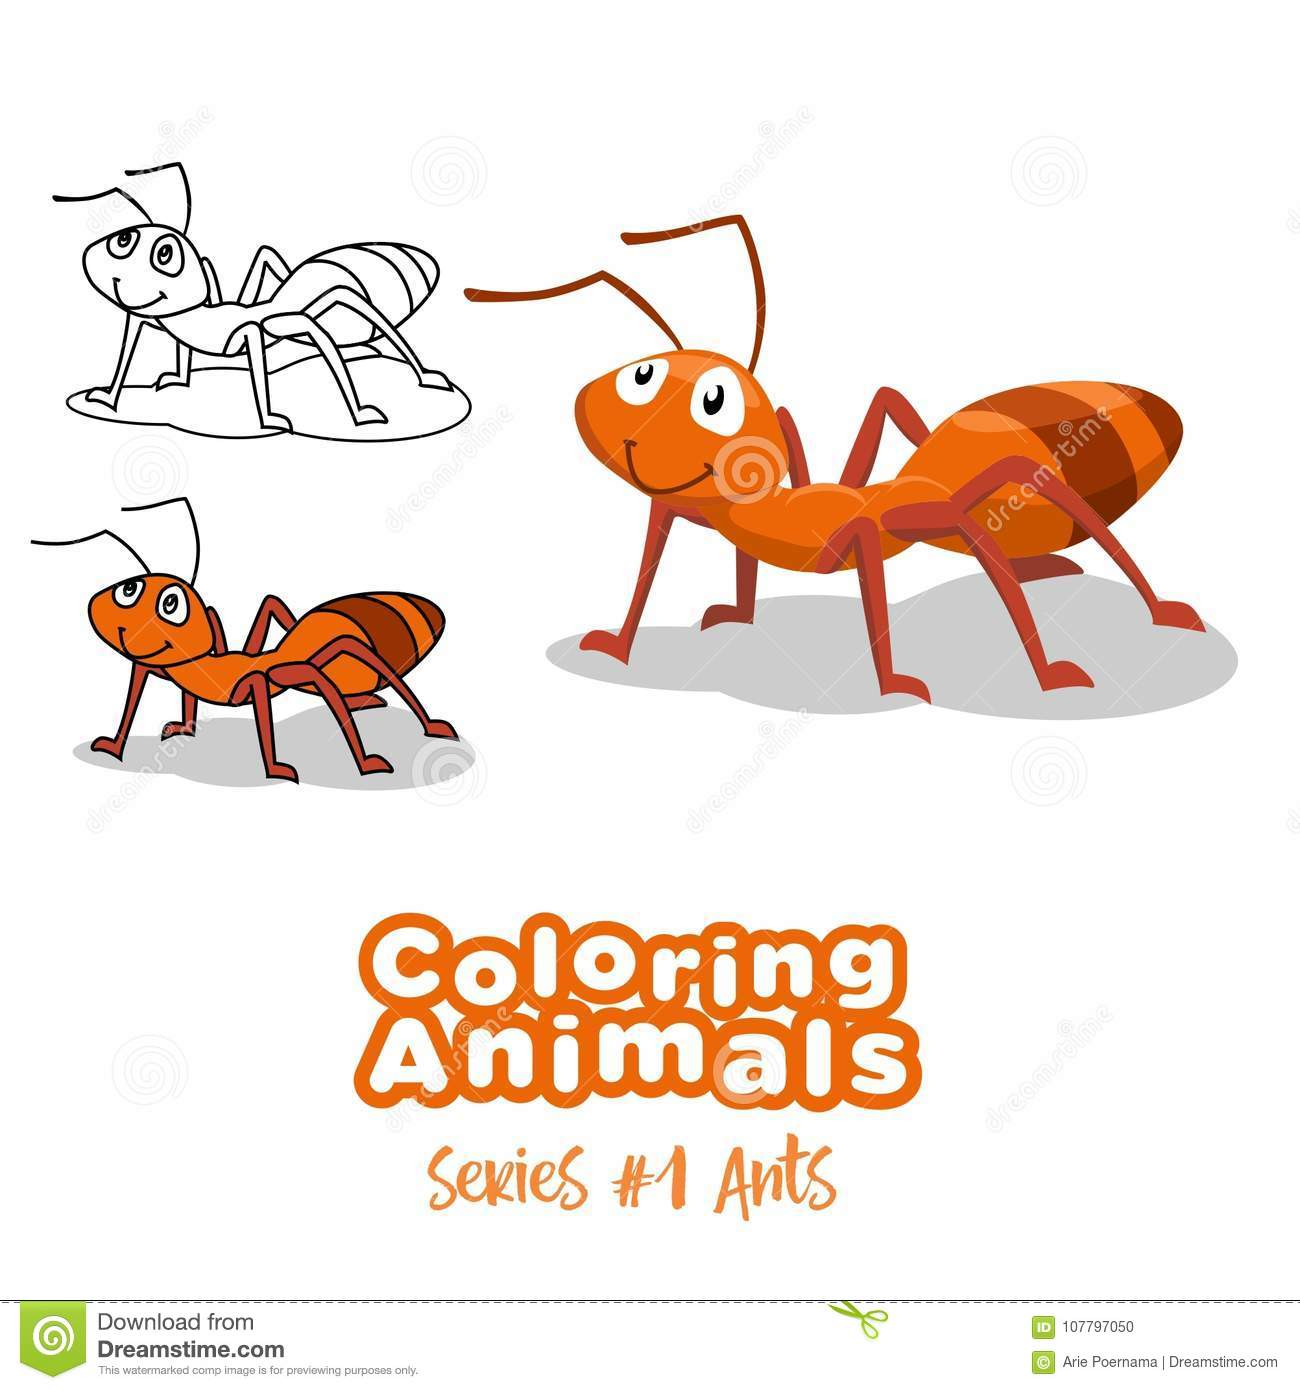 Coloring animals ants vector cartoon for drawing kids and any purpose of books and drawing publication